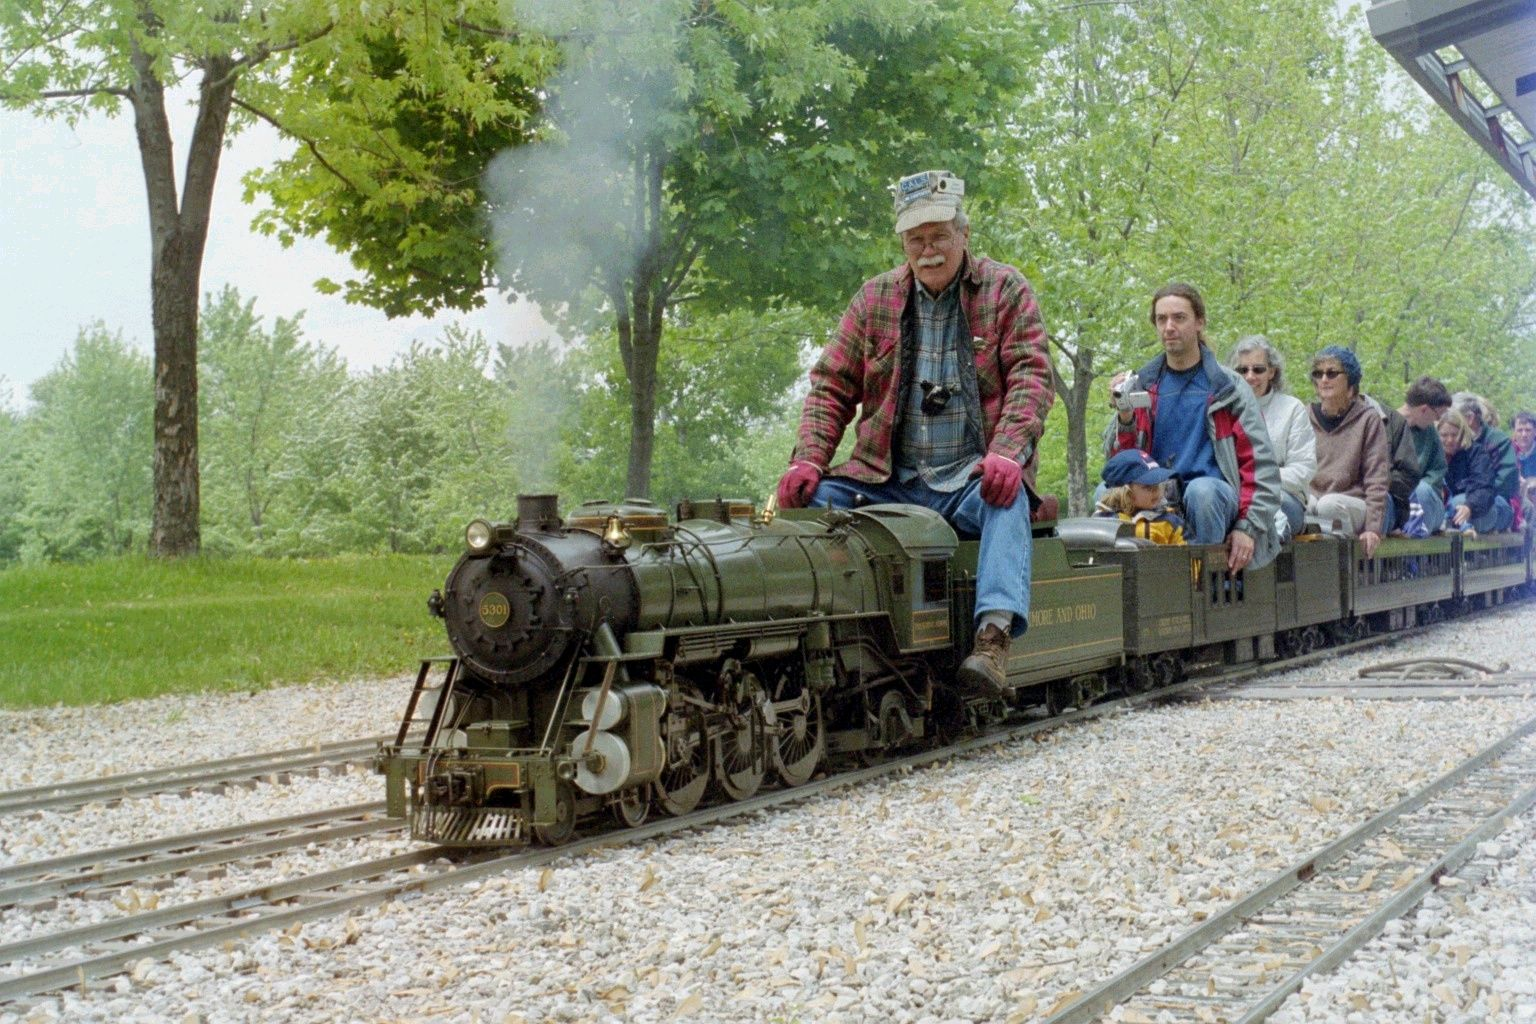 CALS Miniature Train Rides   Train Buffs Builds, Maintains, And Operates  Mostly Coal Burning